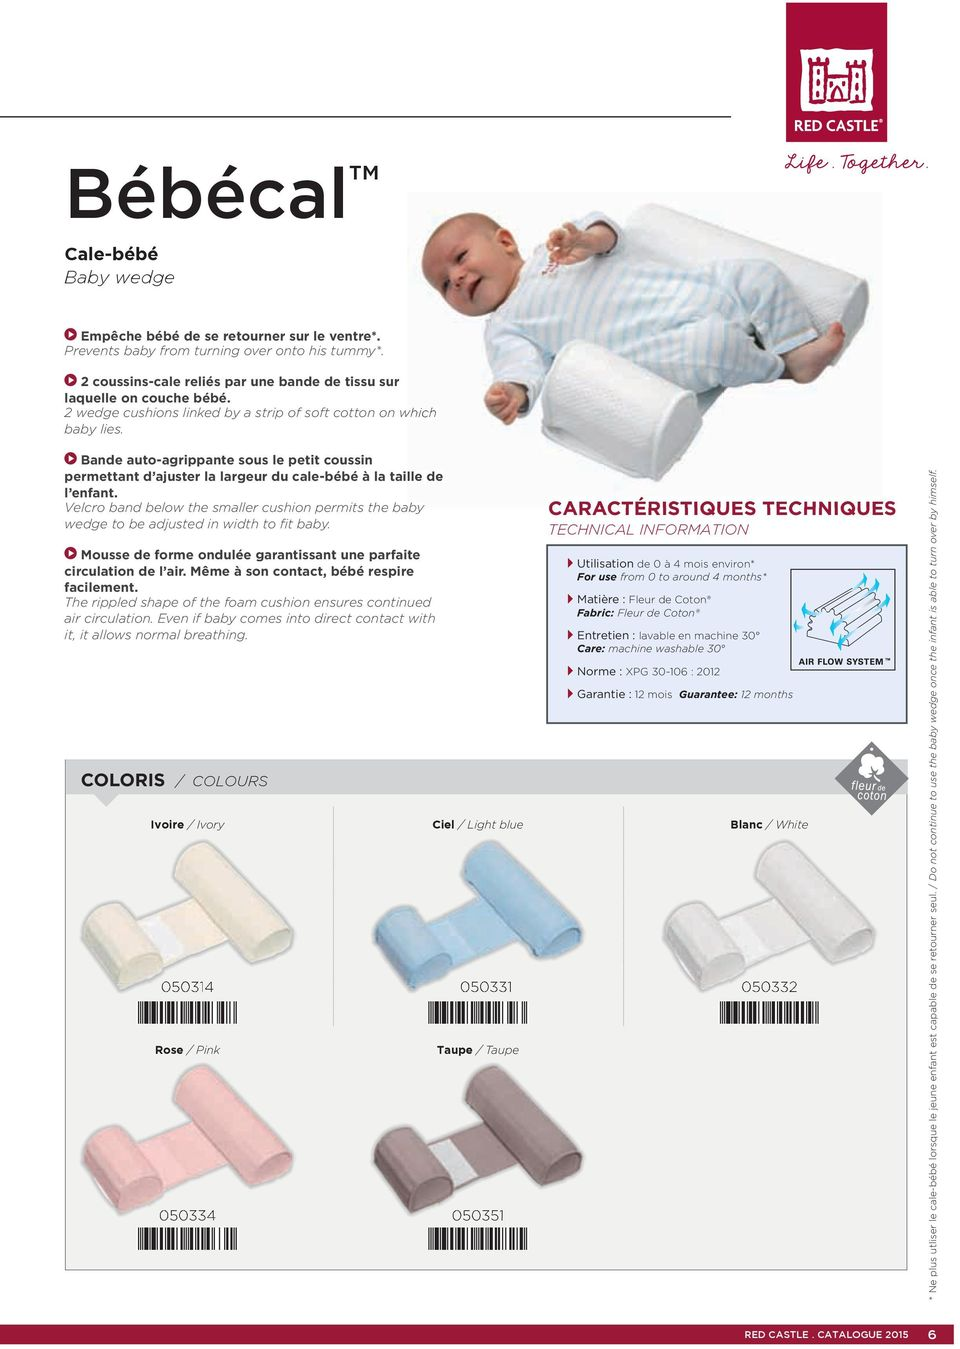 Velcro band below the smaller cushion permits the baby wedge to be adjusted in width to fit baby. Mousse de forme ondulée garantissant une parfaite circulation de l air.